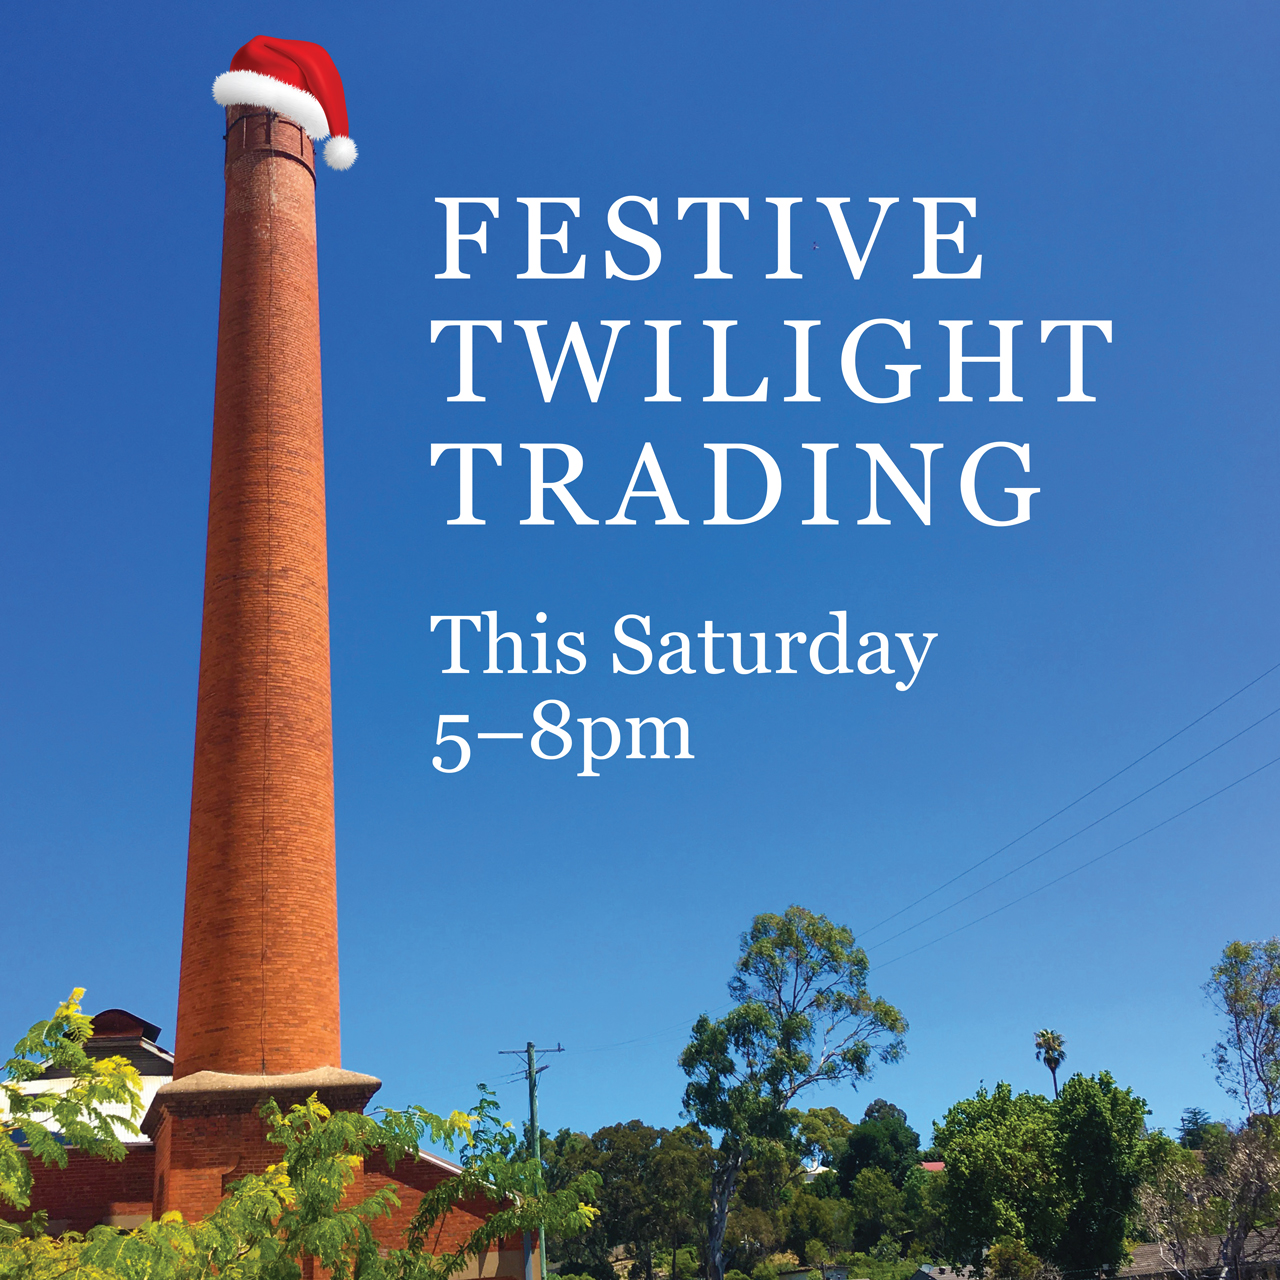 Festive Twilight Trading at The Mill